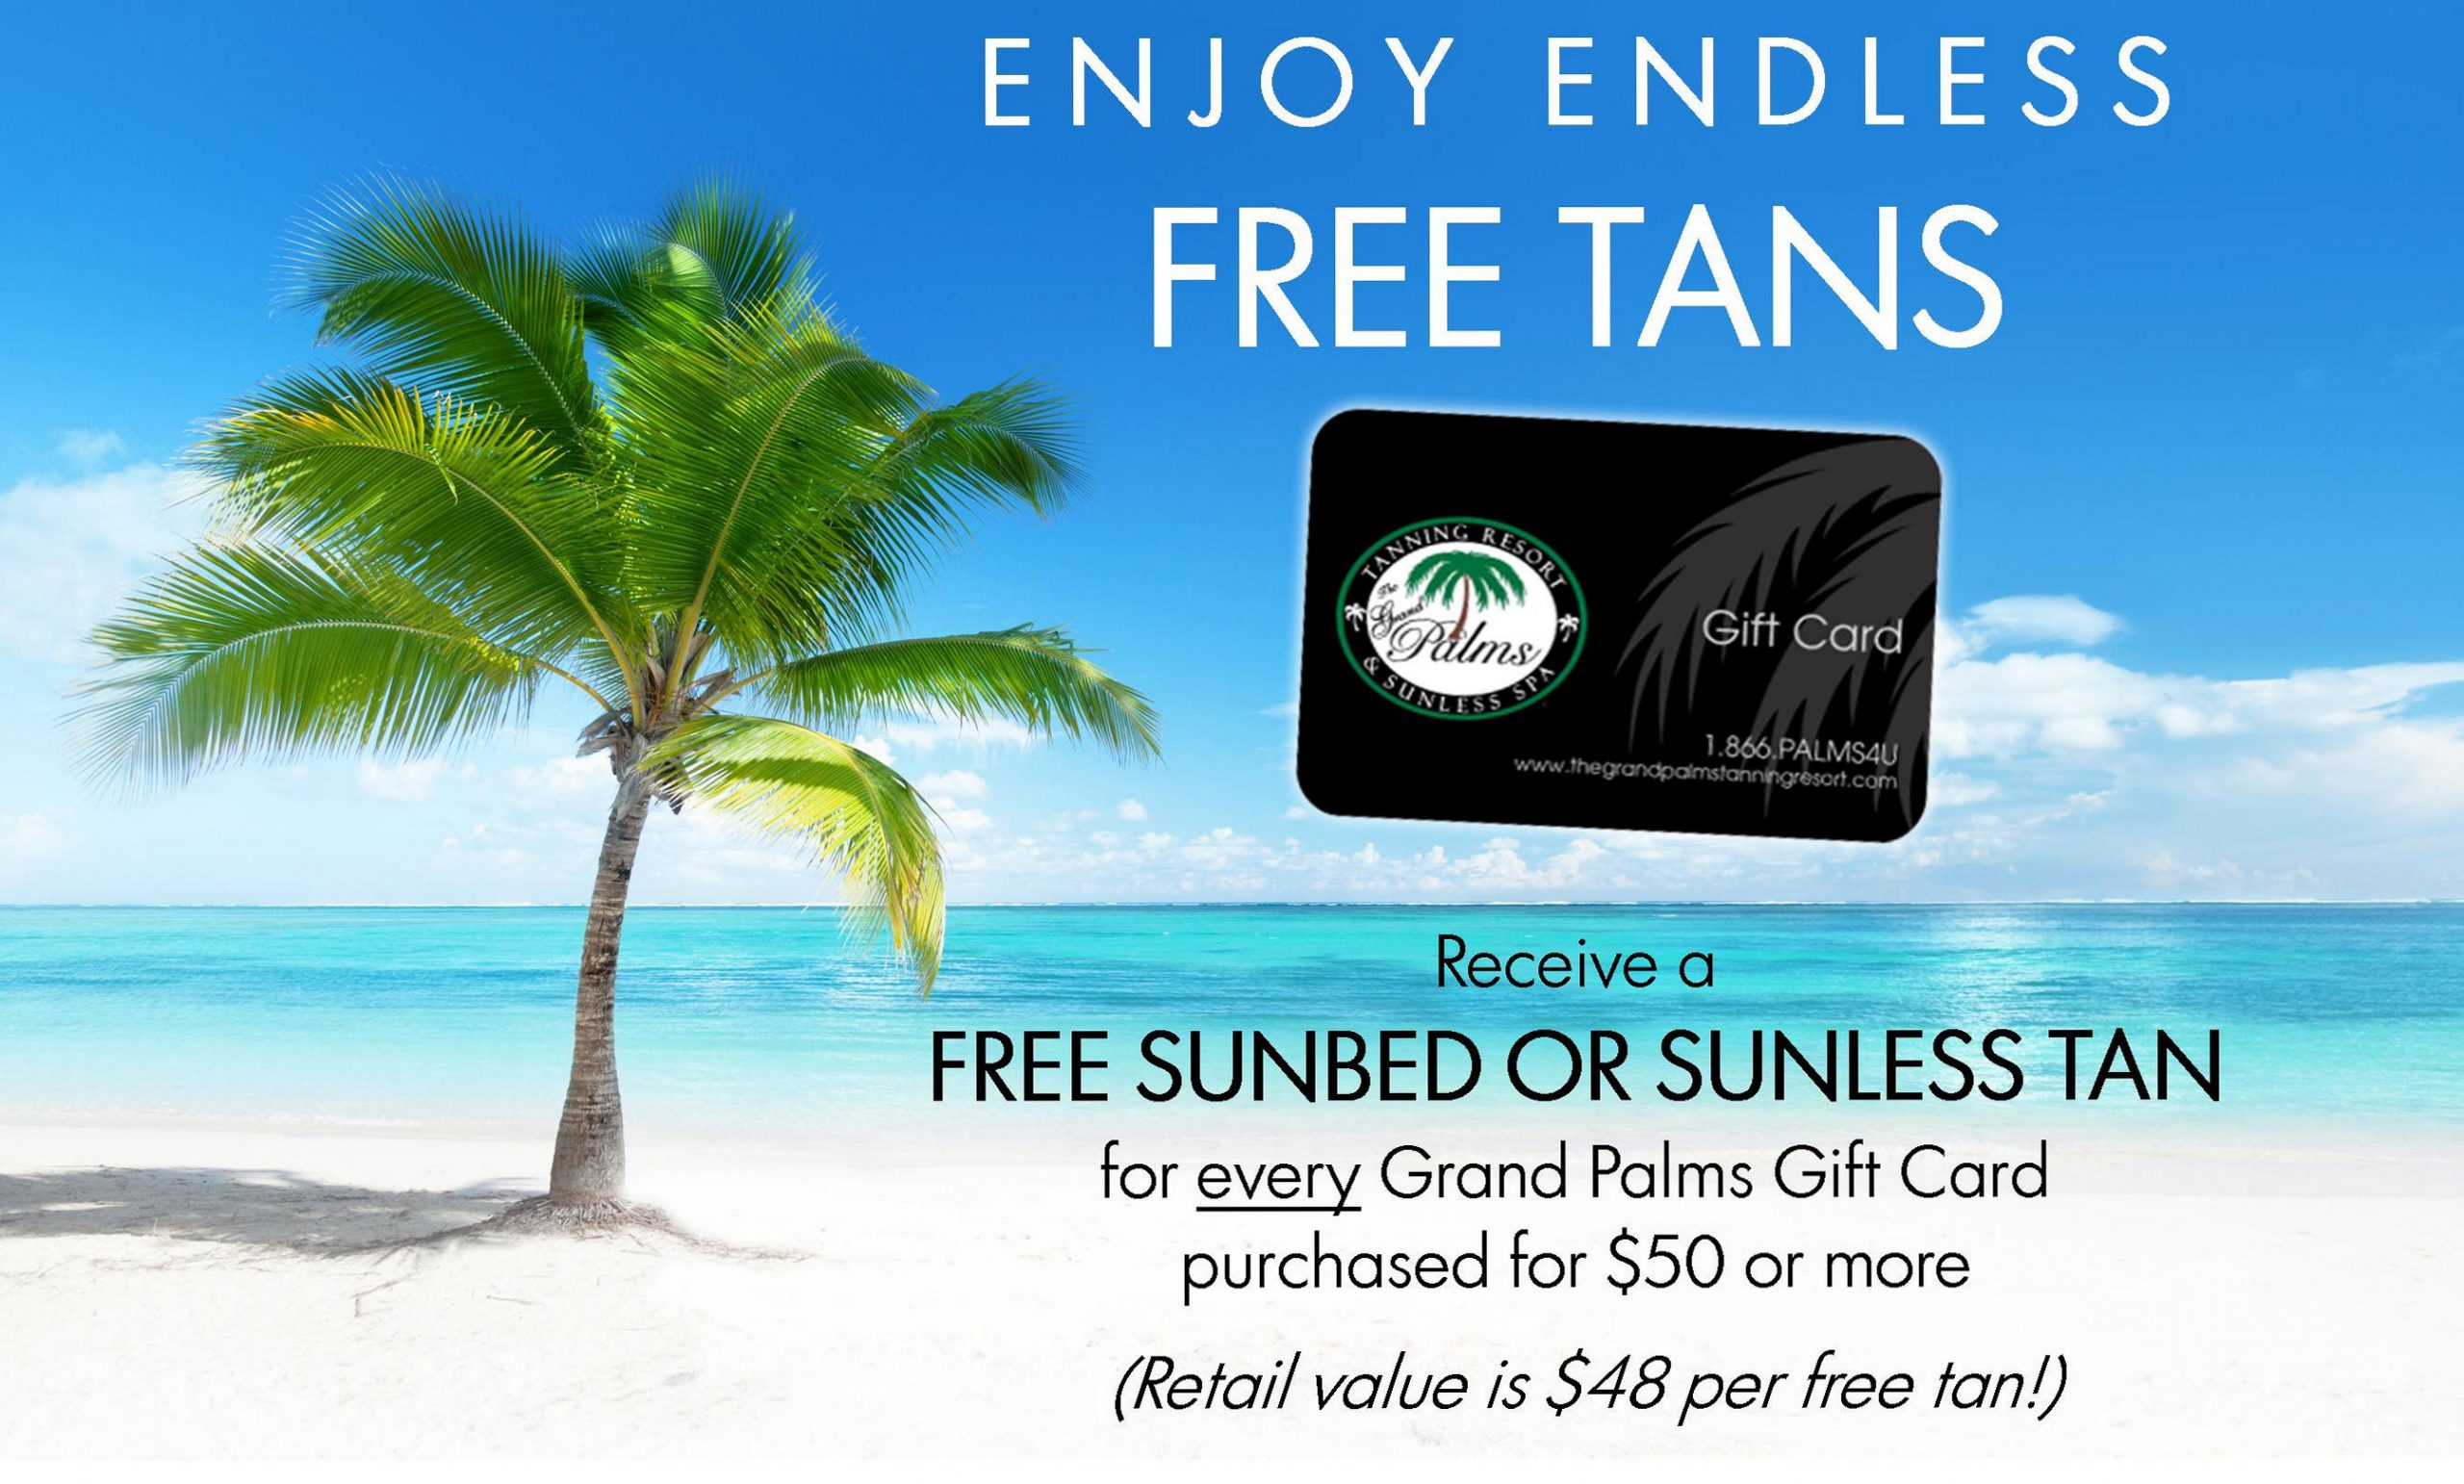 enjoy endless free tans at the palms tanning resort